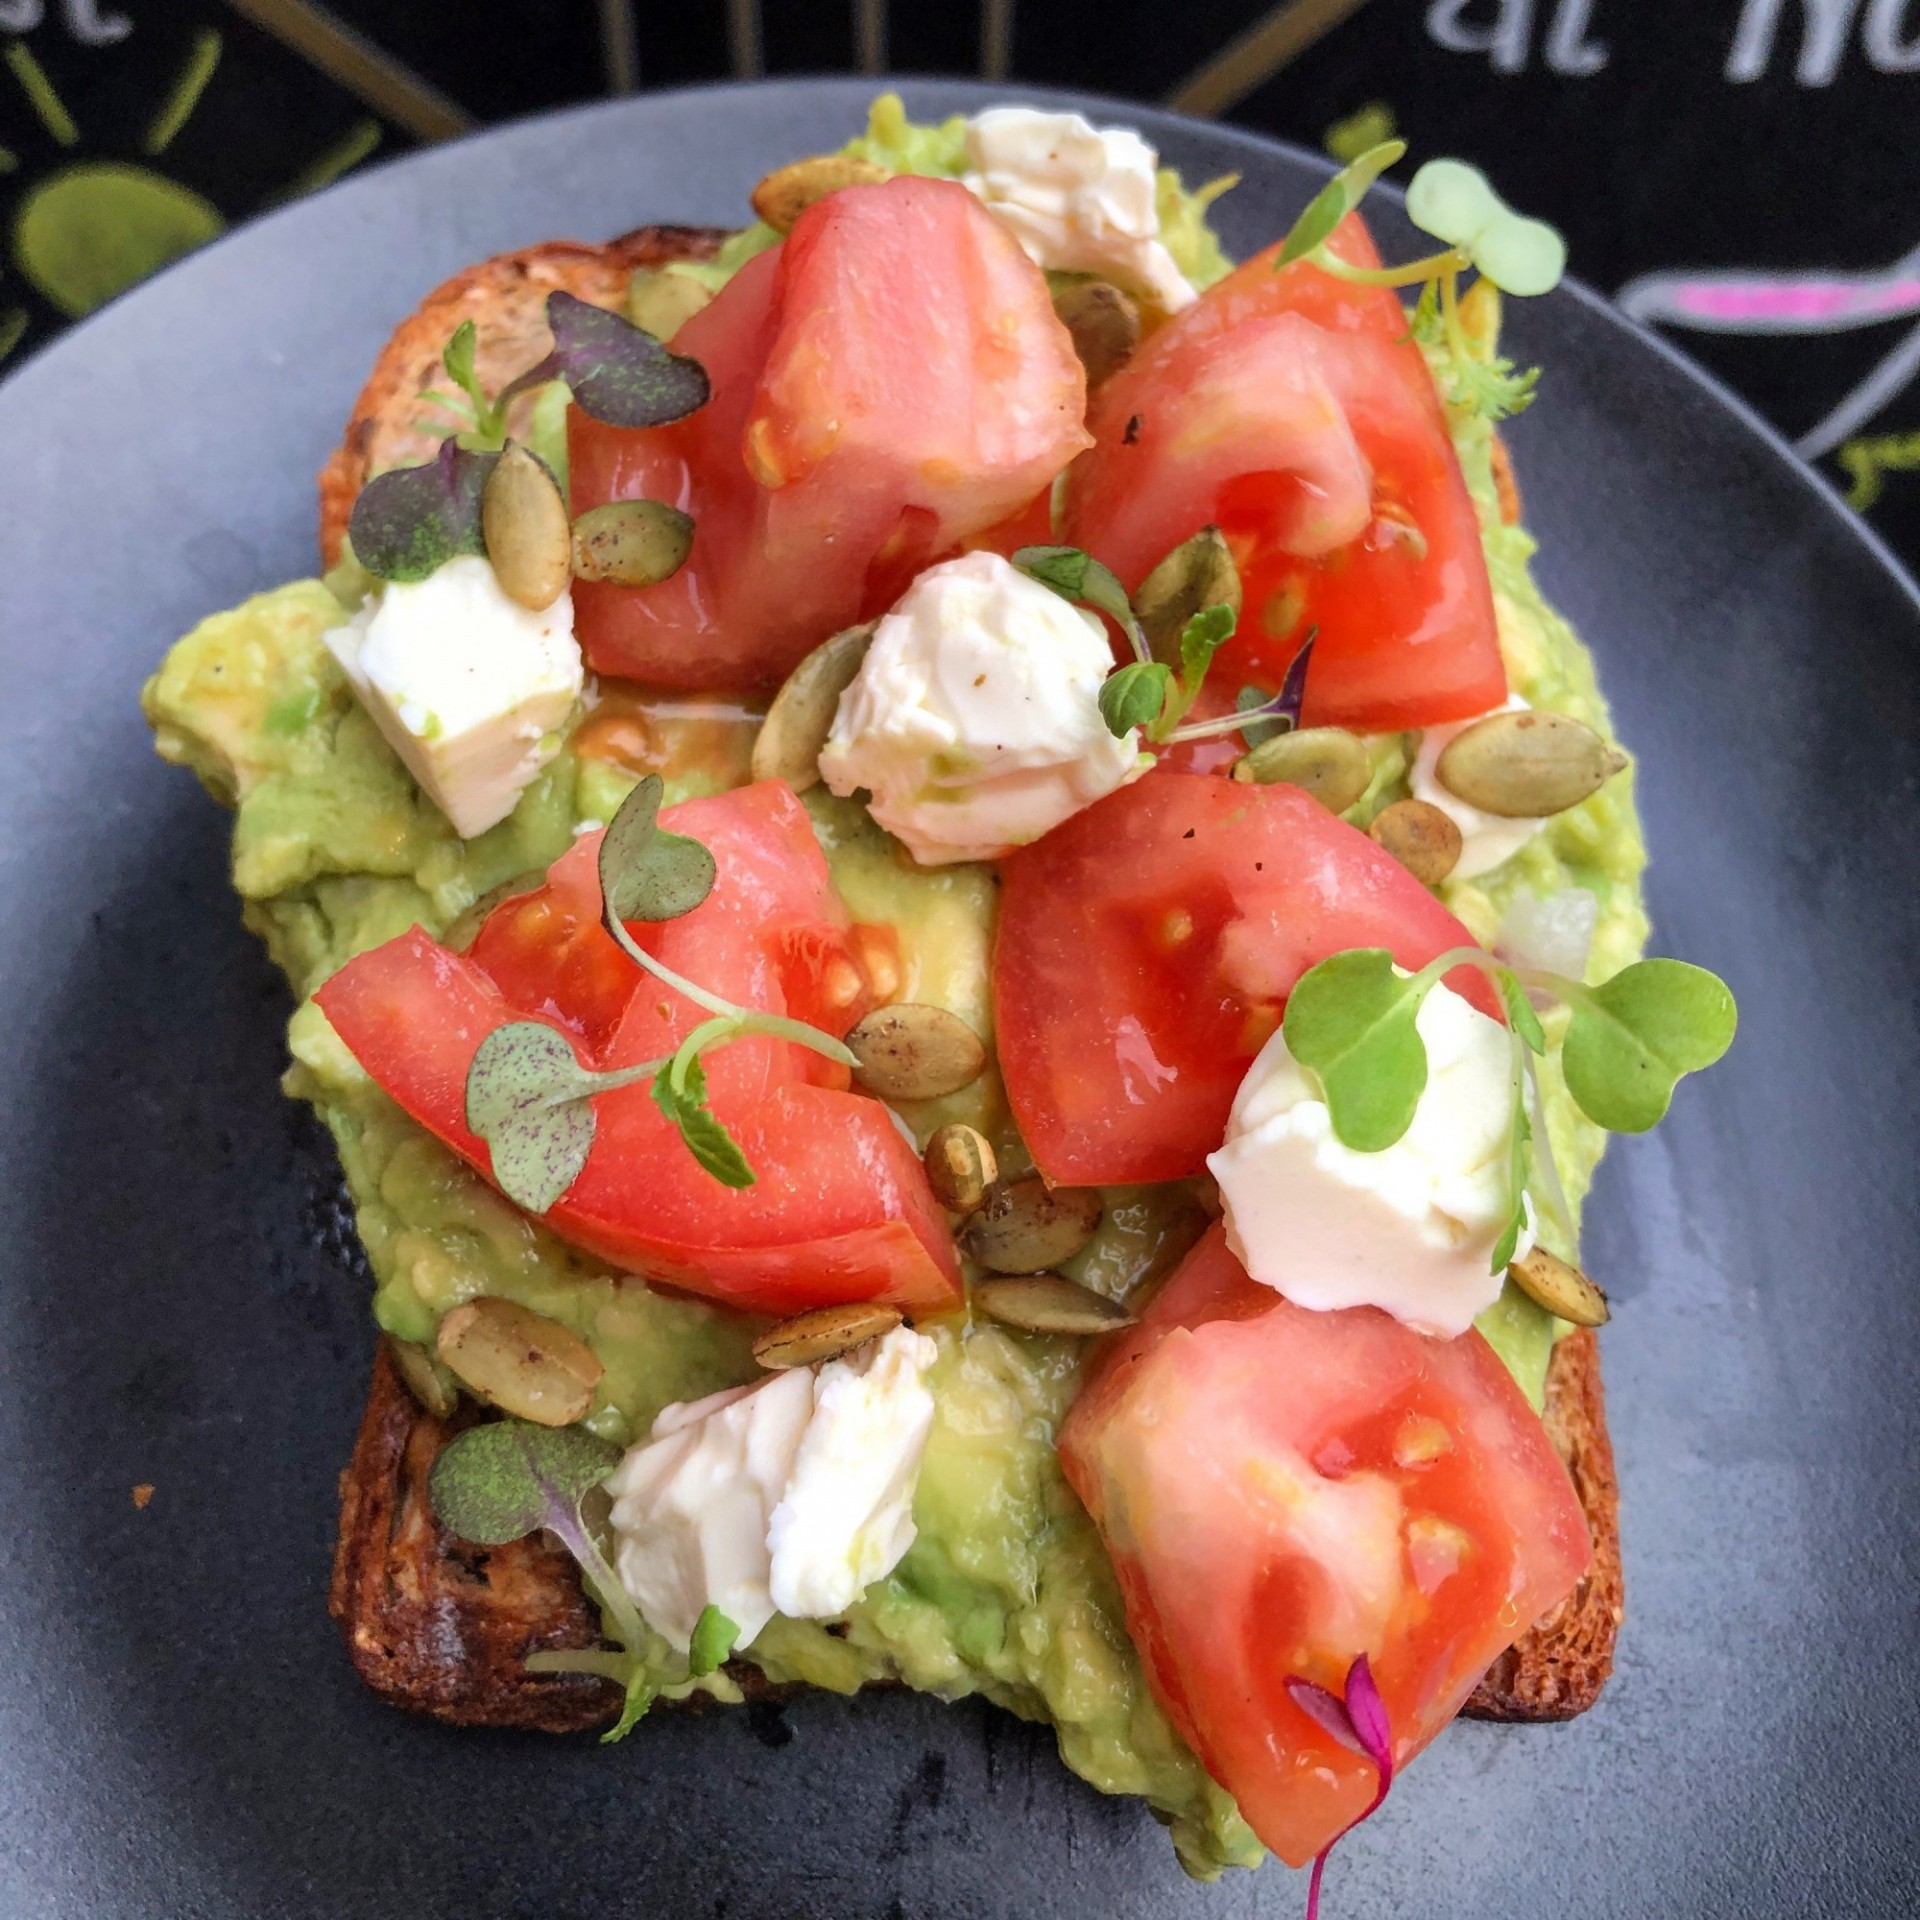 Avocado toast with tomatoes, feta cheese, and pepitas